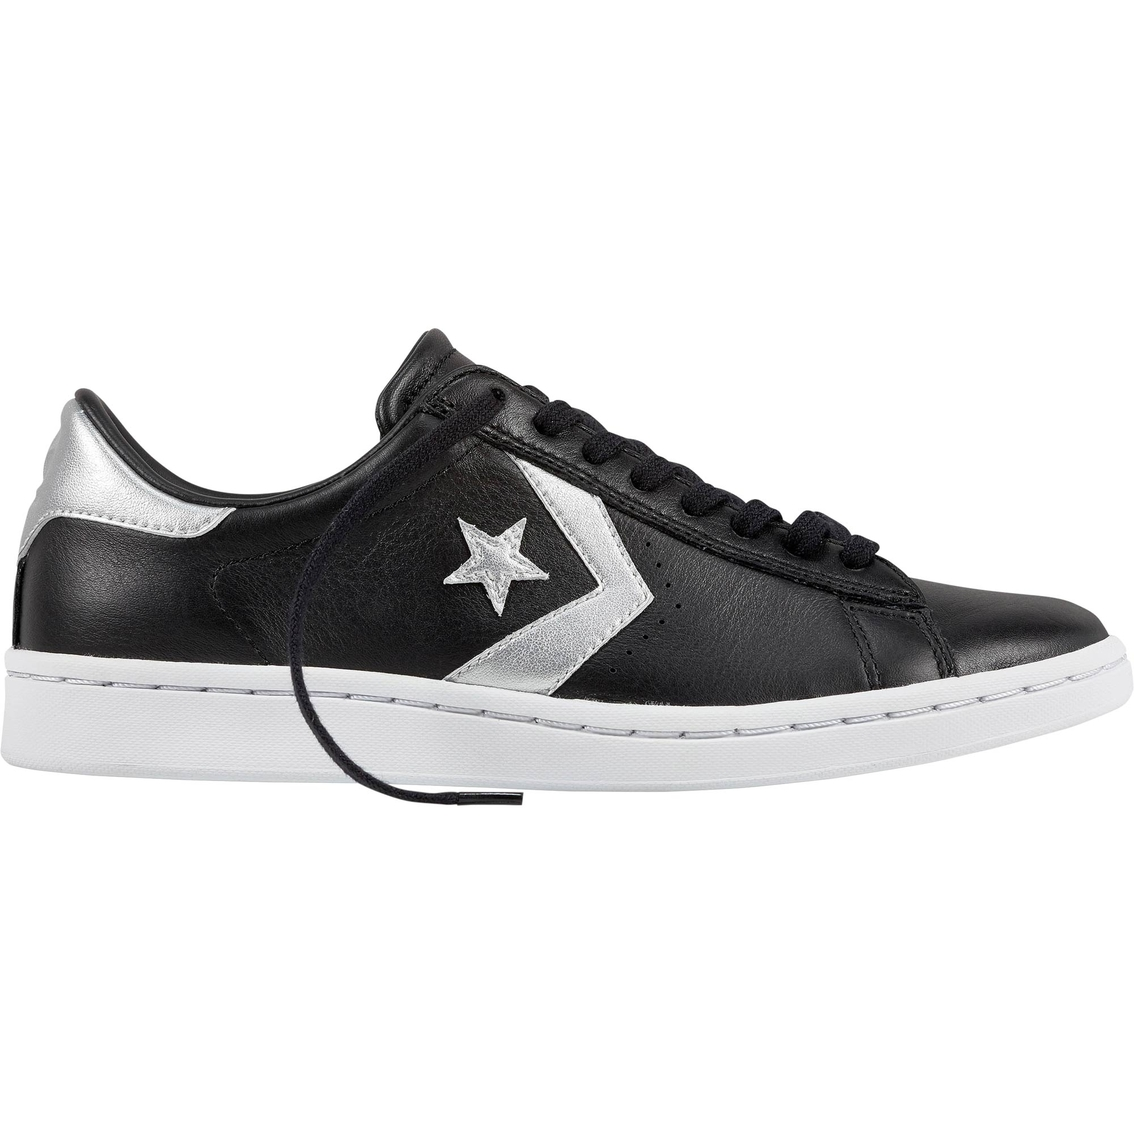 09d7590f66b5c8 Converse Chuck Taylor All Star Women s Pro Leather Oxford Shoes ...